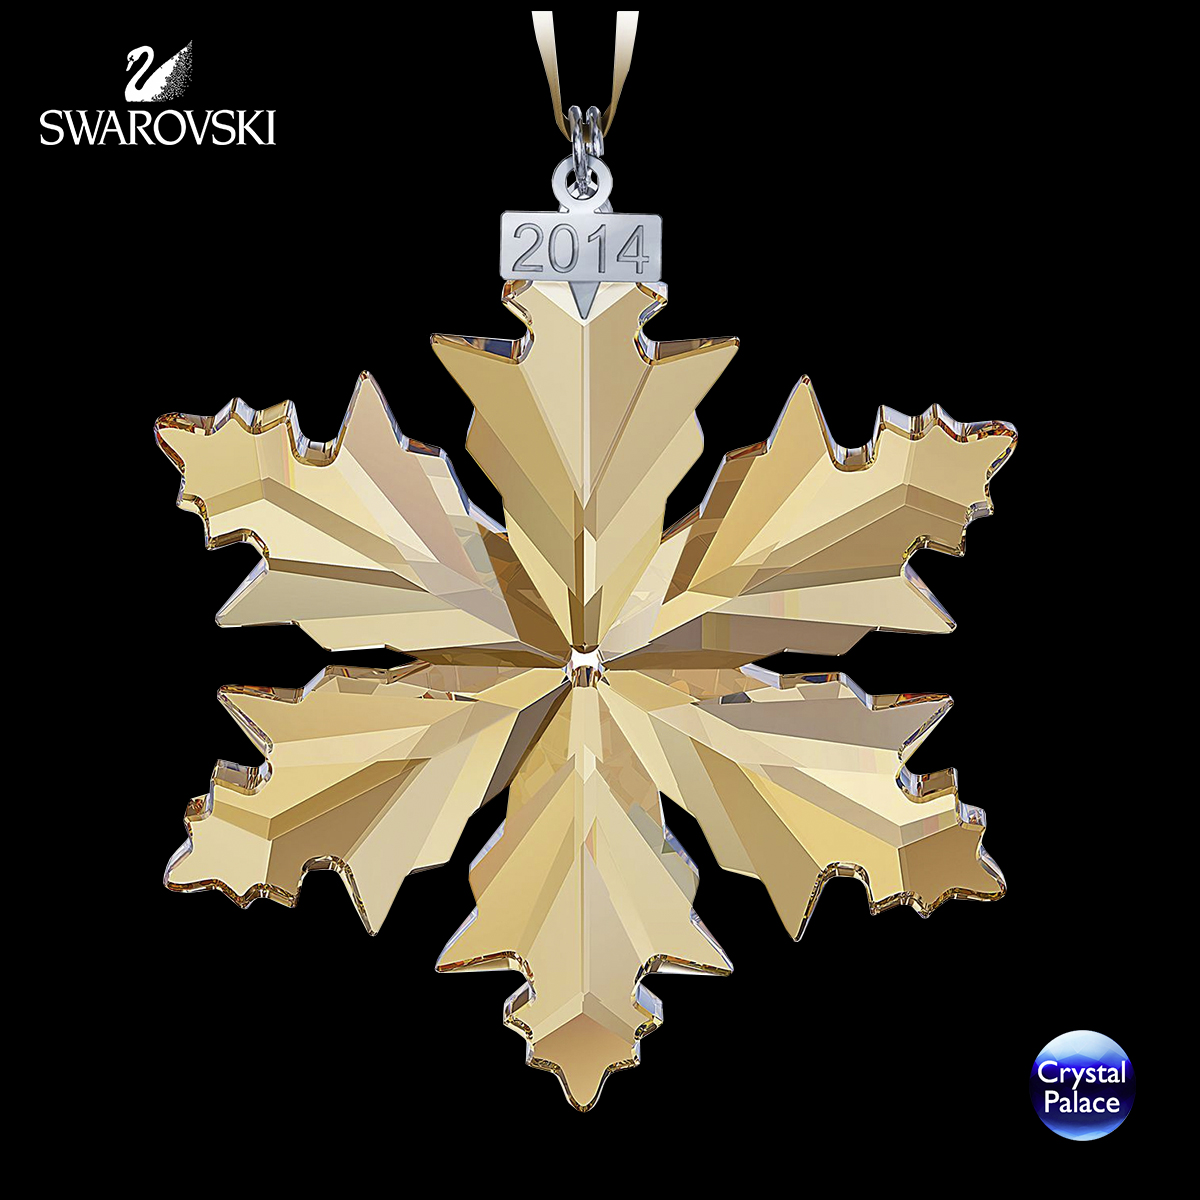 Swarovski SCS Christmas Ornament, Annual Edition 2014